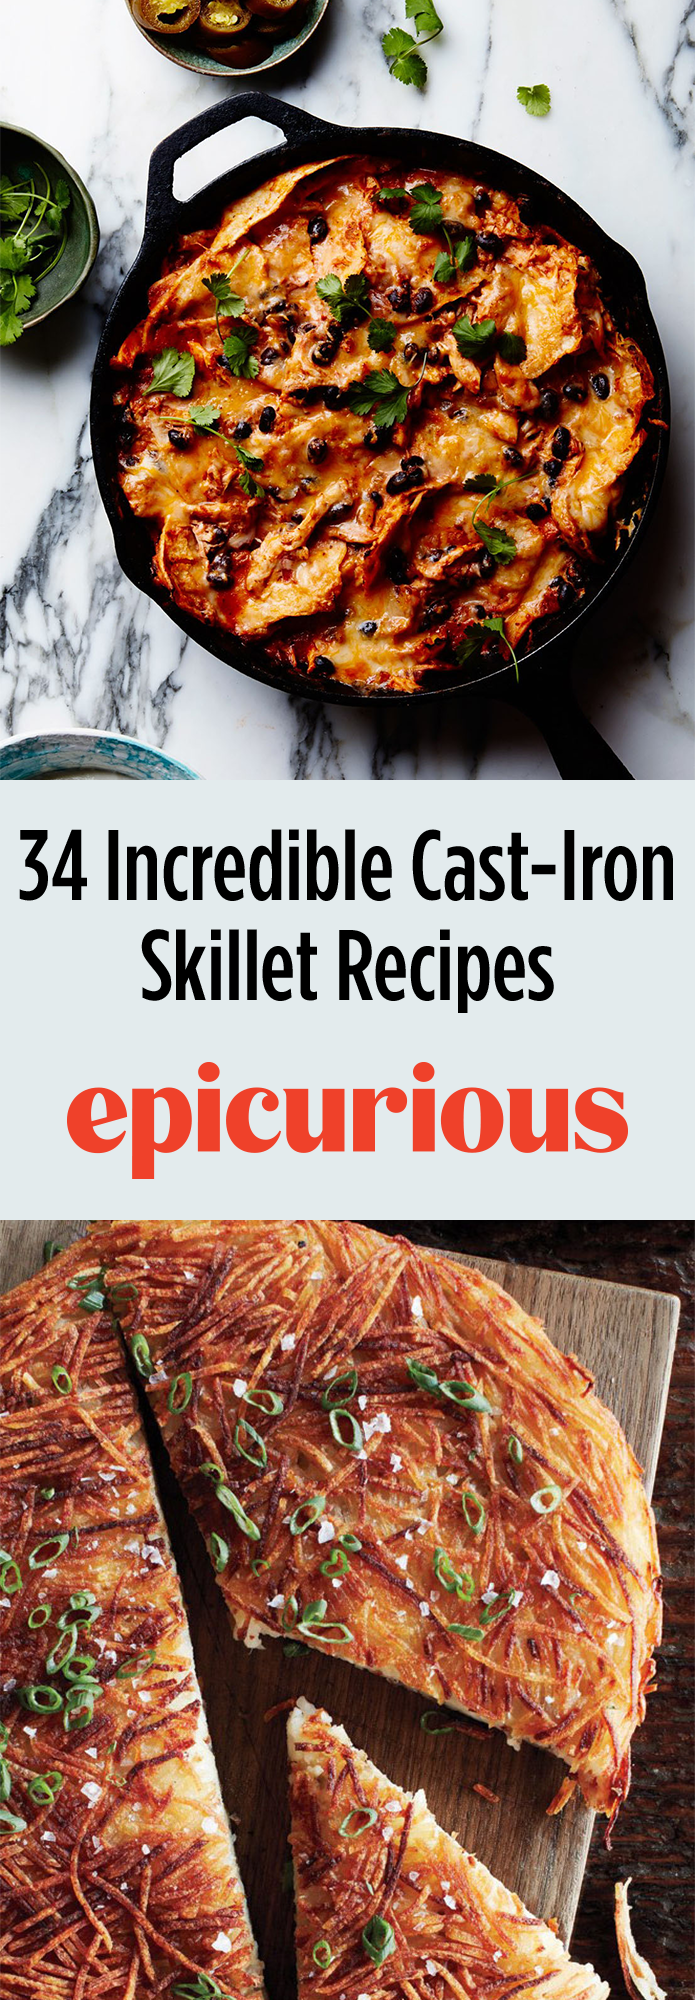 34 incredible cast iron skillet recipes epicurious cast iron 34 incredible cast iron skillet recipes epicurious forumfinder Choice Image